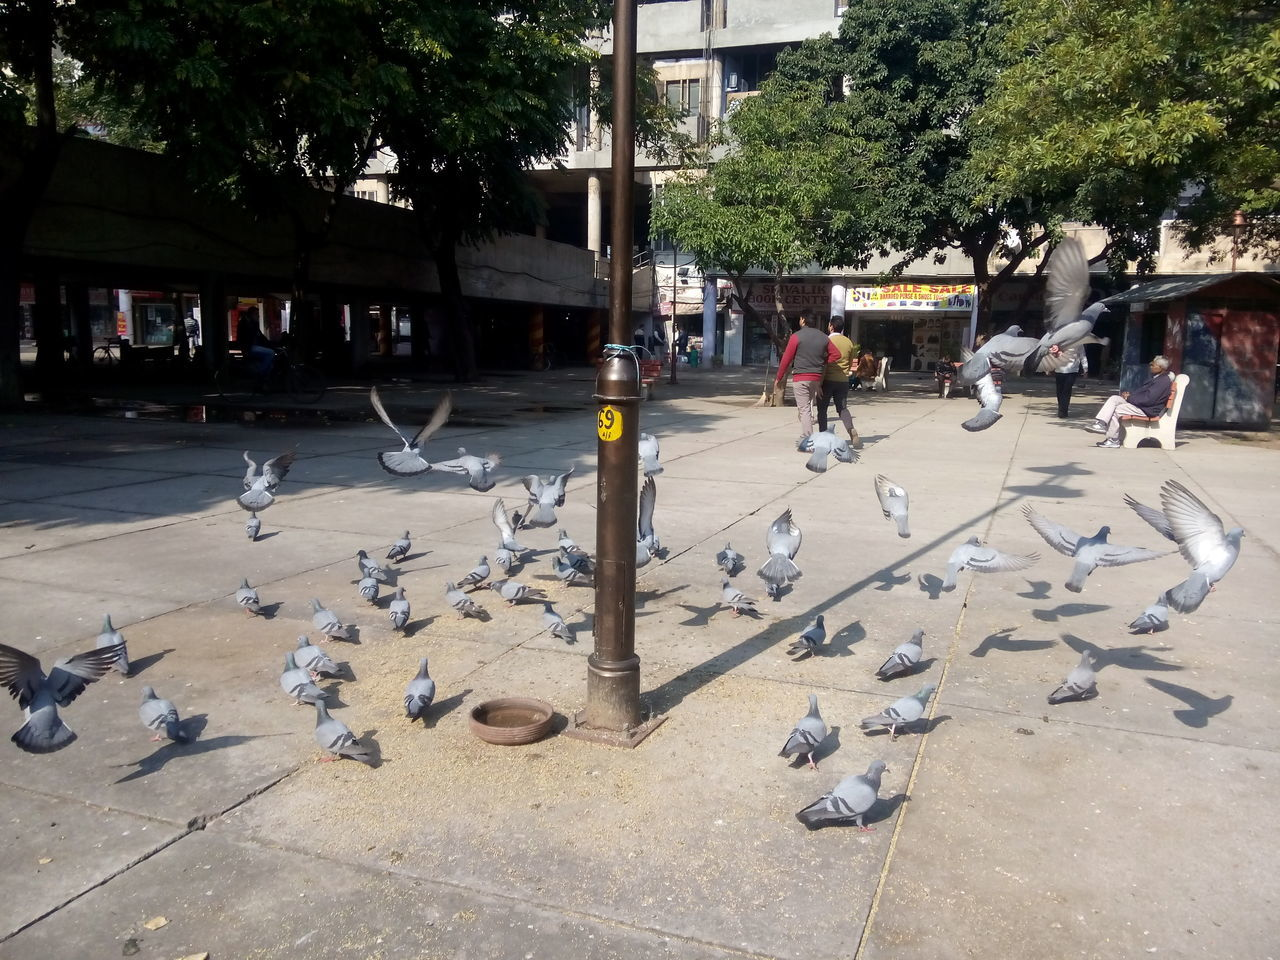 bird, large group of animals, animal themes, animals in the wild, flock of birds, tree, animal wildlife, outdoors, incidental people, day, building exterior, architecture, real people, built structure, one person, flying, spread wings, one man only, mammal, people